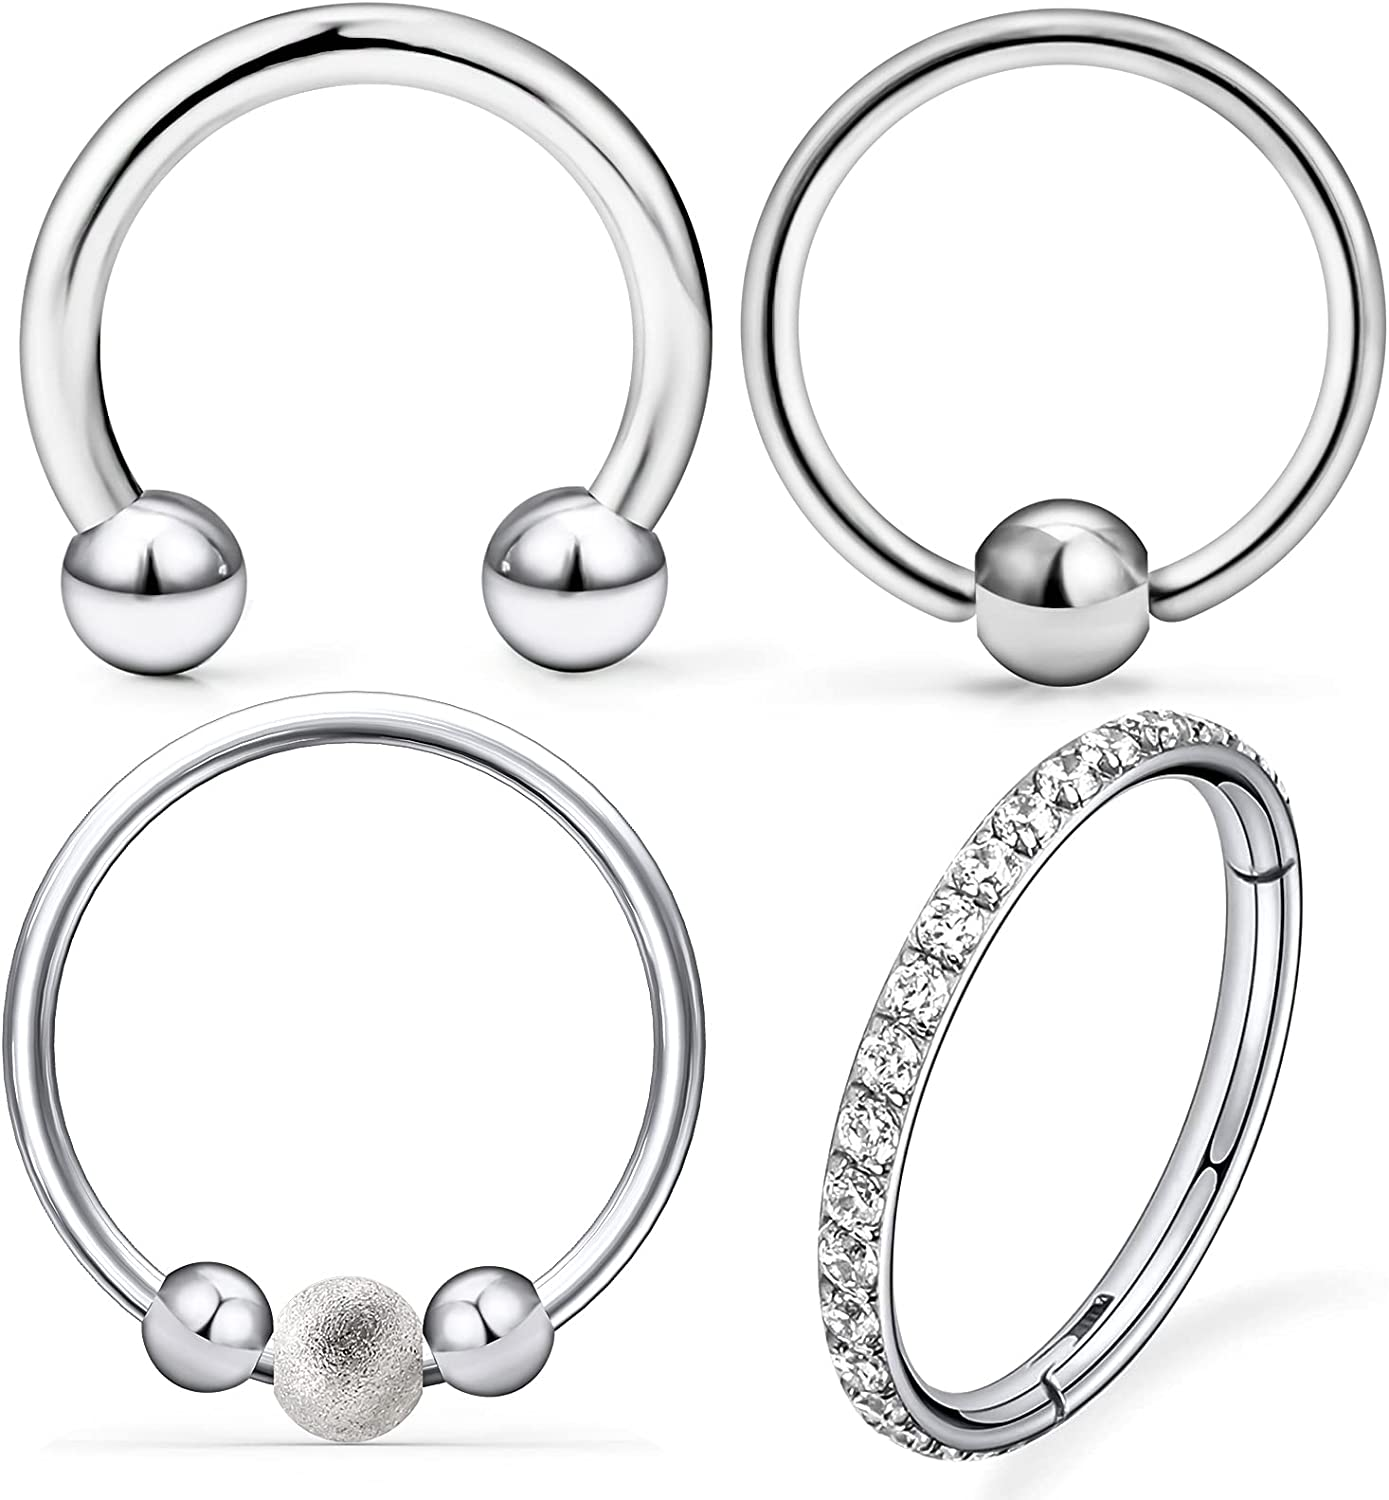 Leiainely Nose Rings for Women Cartilage Earrings Cartilage Earring Hoop Helix Piercing Jewelry Hoop Nose Rings for Women Daith Earrings Nose Rings Hoops Daith Piercing Jewelry Septum Rings Jewelry